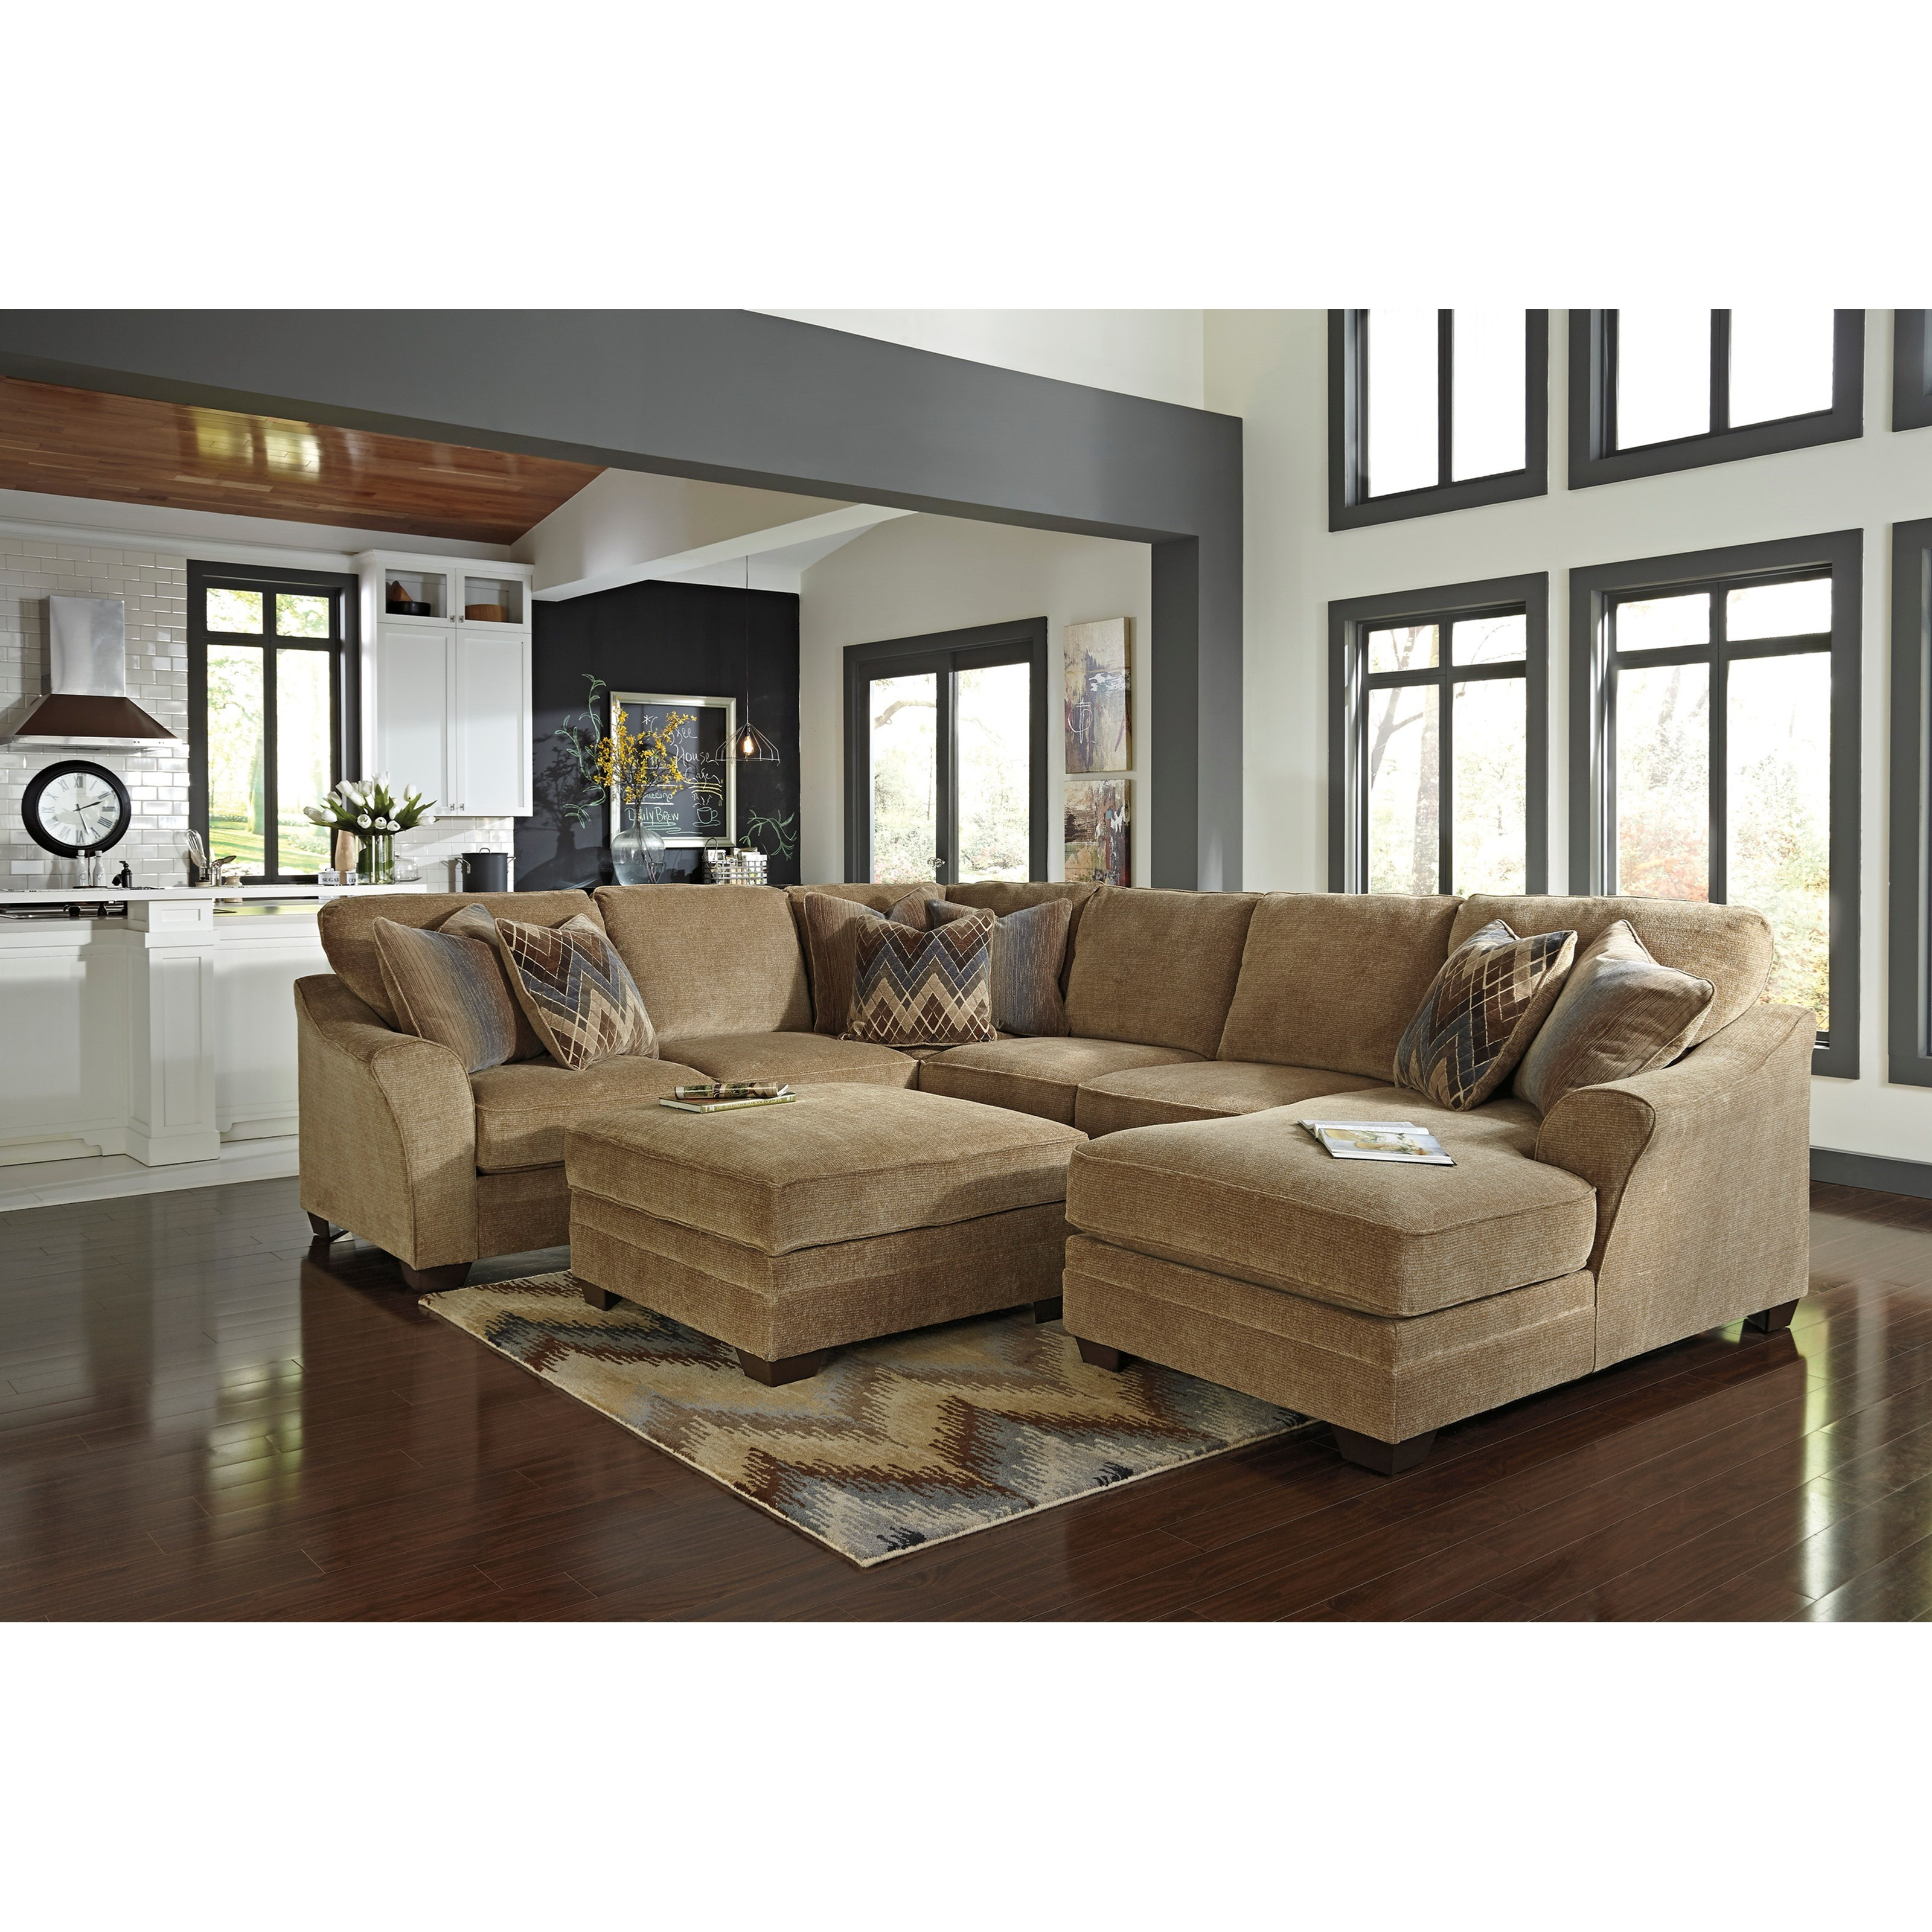 Benchcraft Lonsdale Stationary Living Room Group - Item Number: 92111 Living Room Group 2